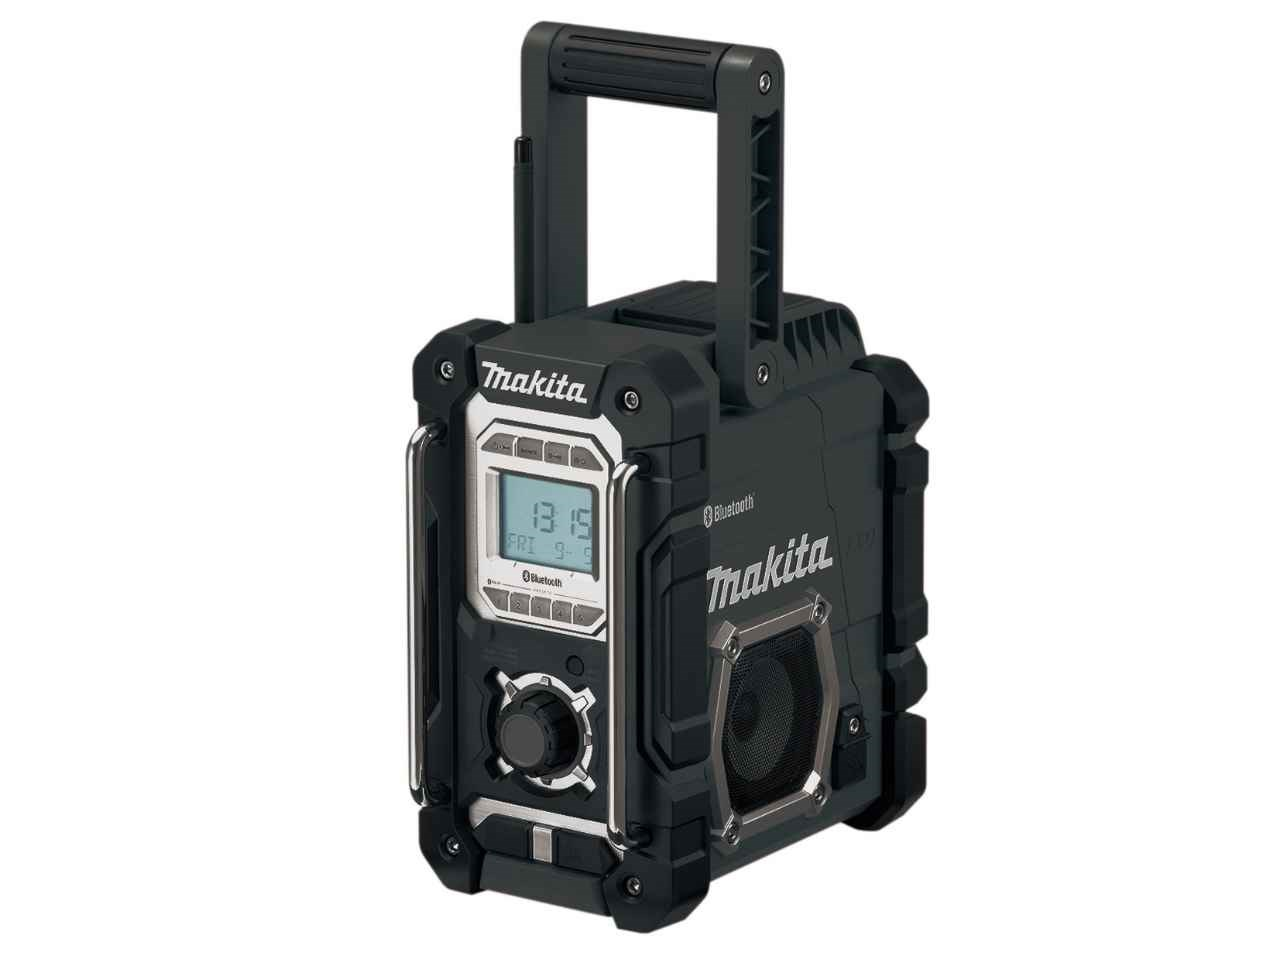 makita dmr108b job site radio black with bluetooth. Black Bedroom Furniture Sets. Home Design Ideas